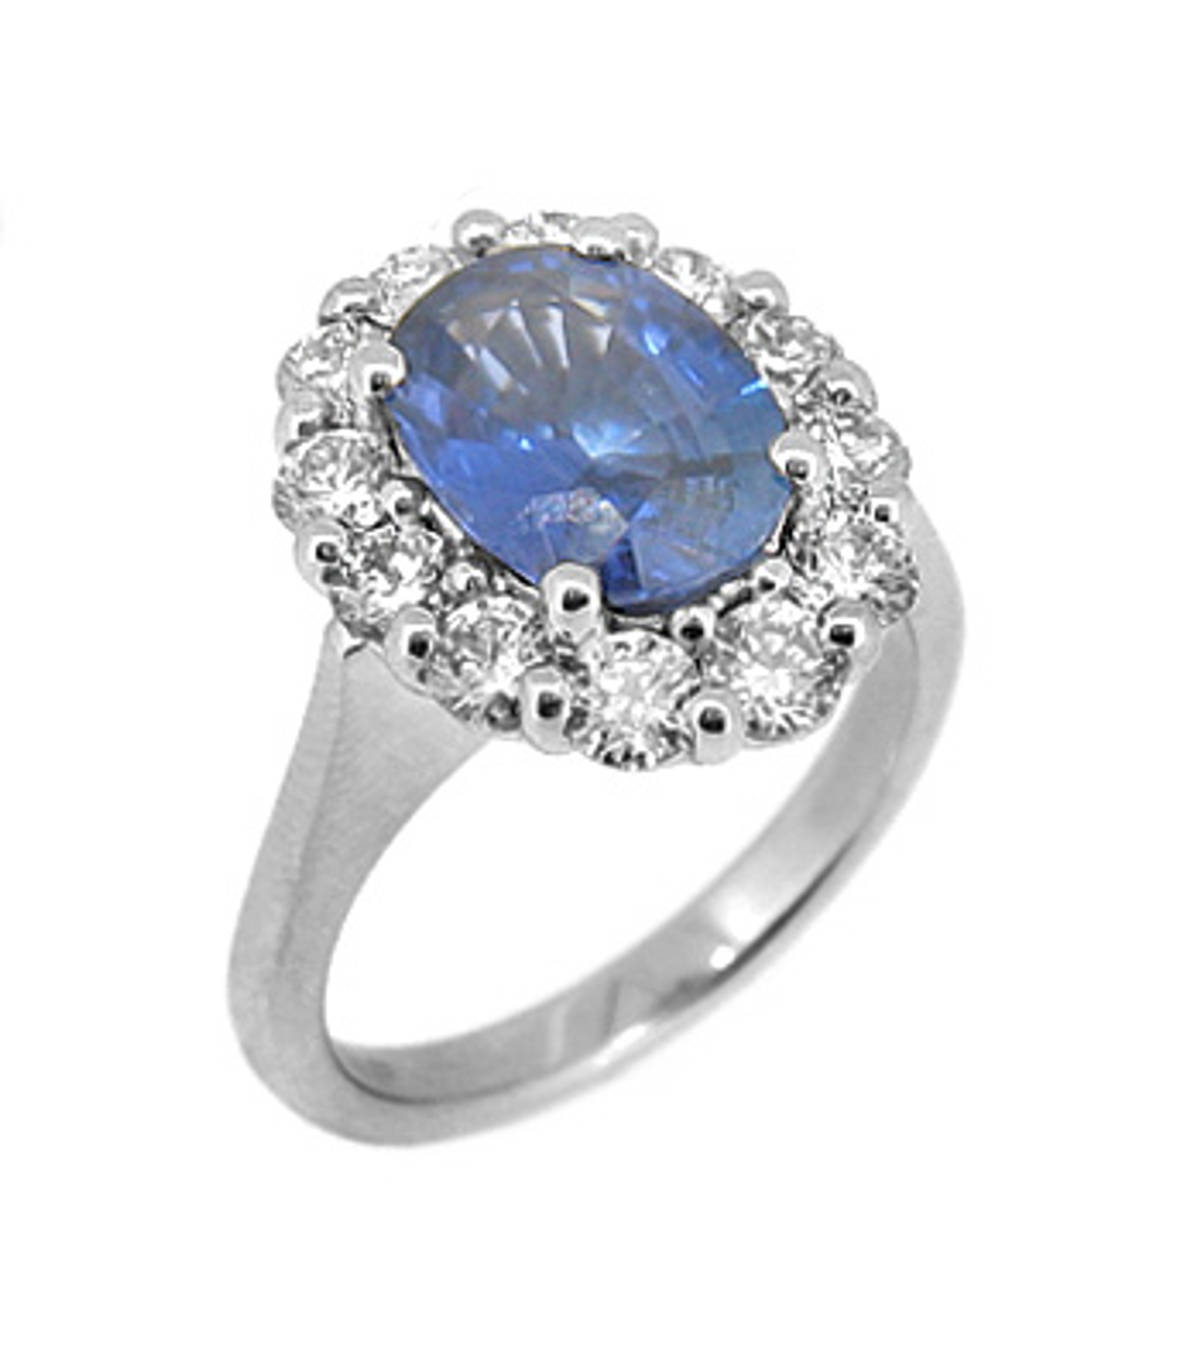 Sapphire and diamond cluster ringPictured item: sapphire: total 3.01ct/diamonds: total 1.20ct set in 18k white gold